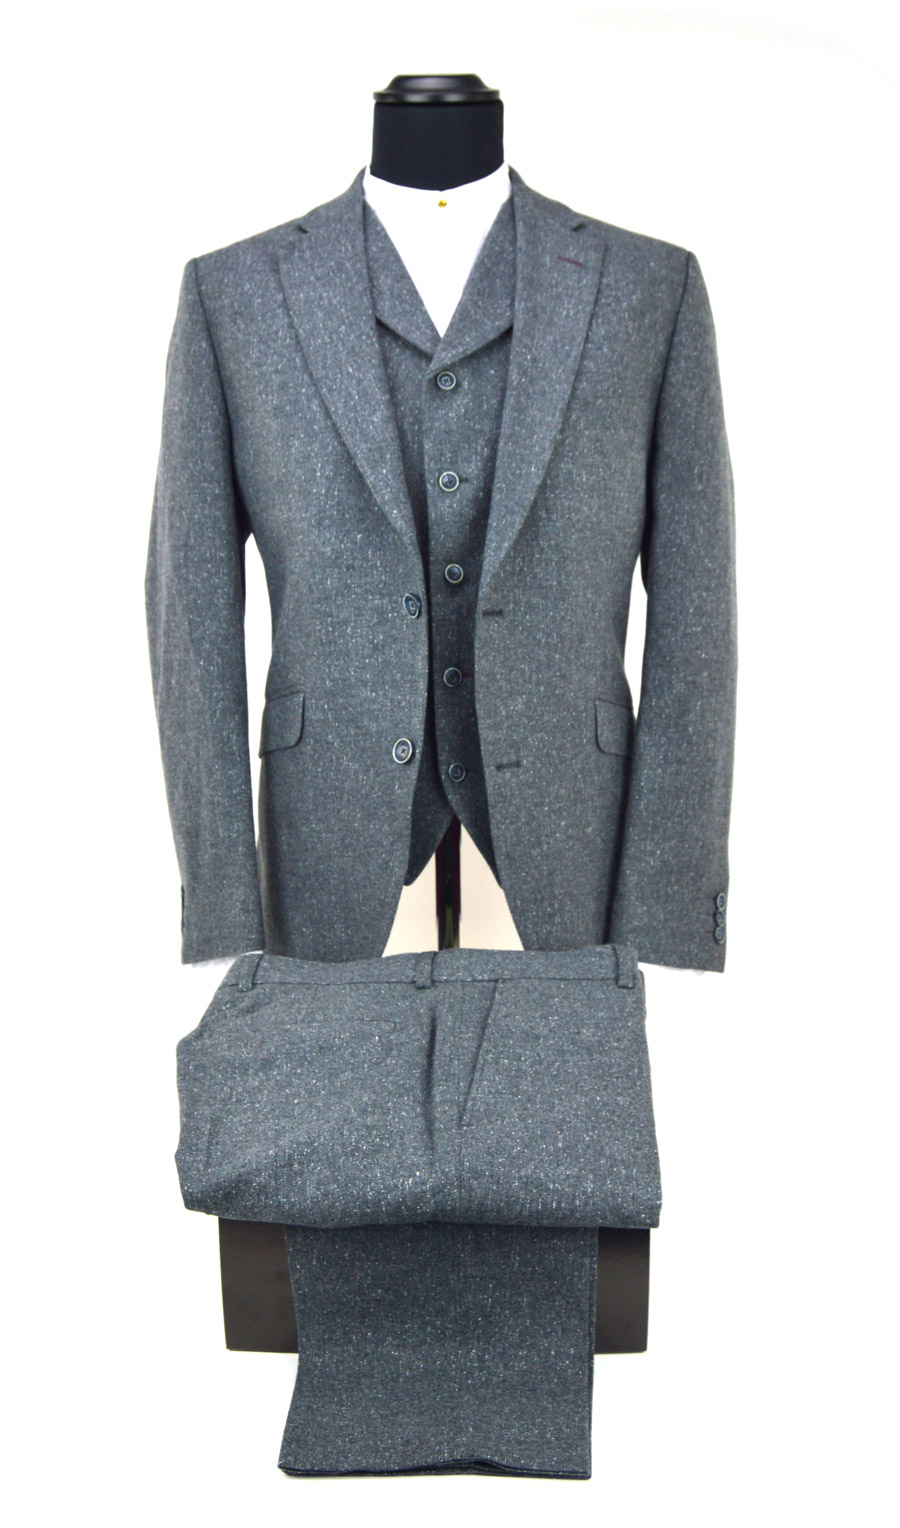 Grey 3 Piece Suit- Peaky Blinders Inspired – Mod Shoes